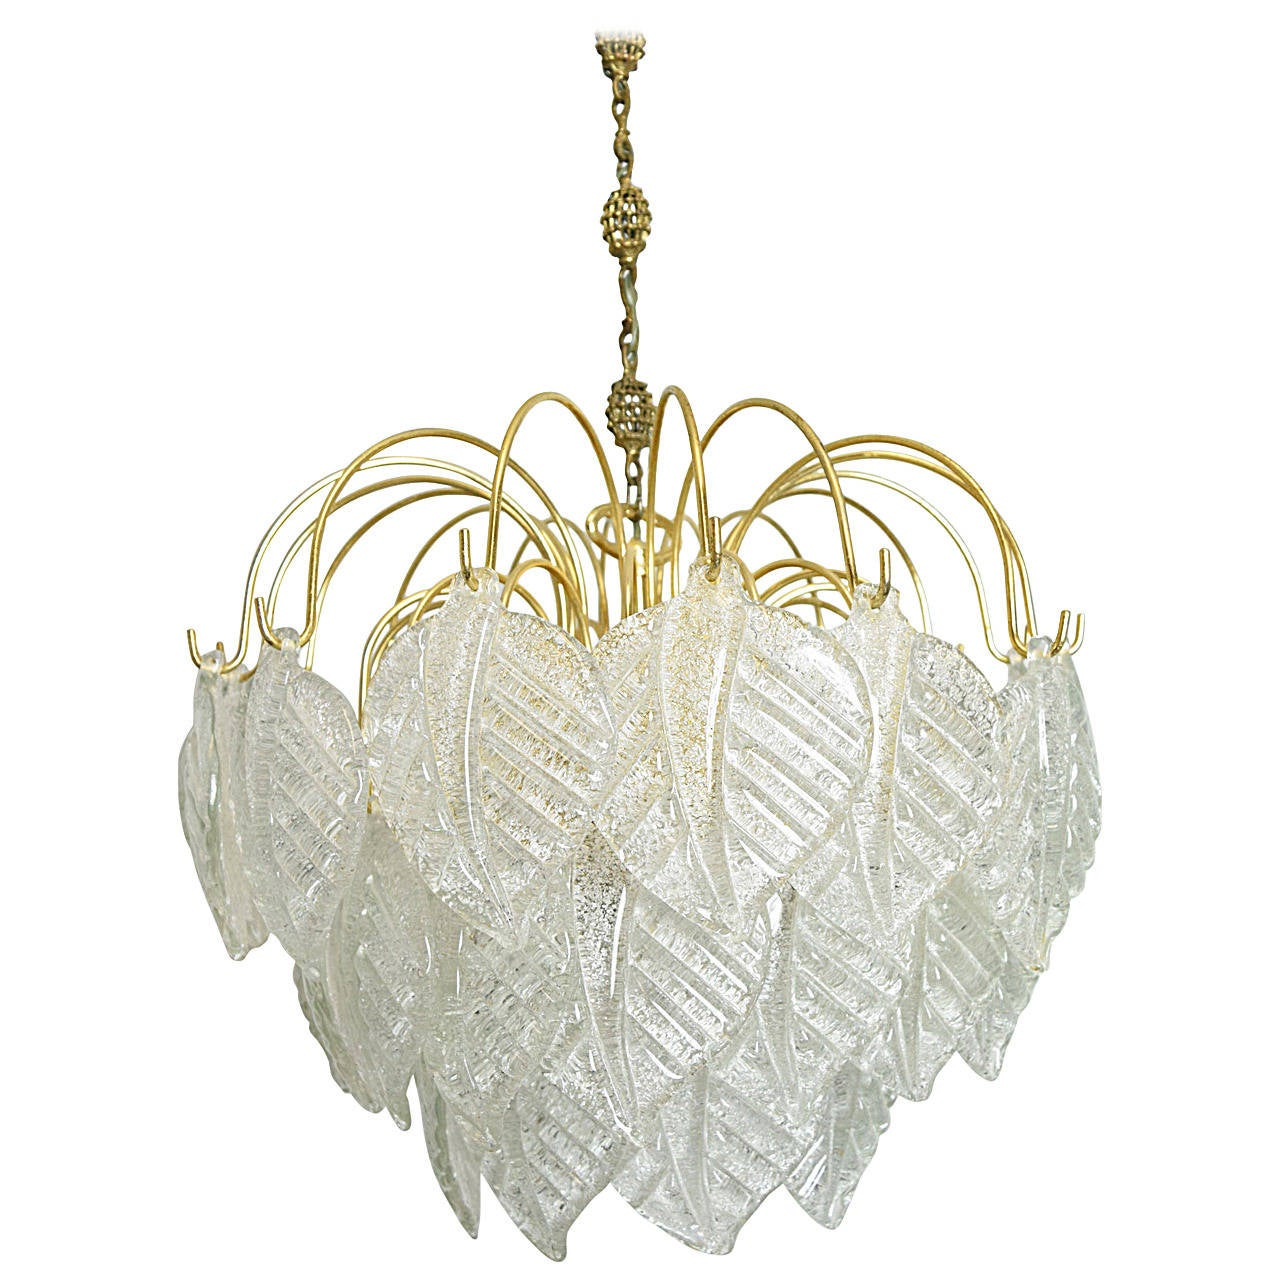 Barovier and toso murano glass chandelier at 1stdibs for Barovier e toso